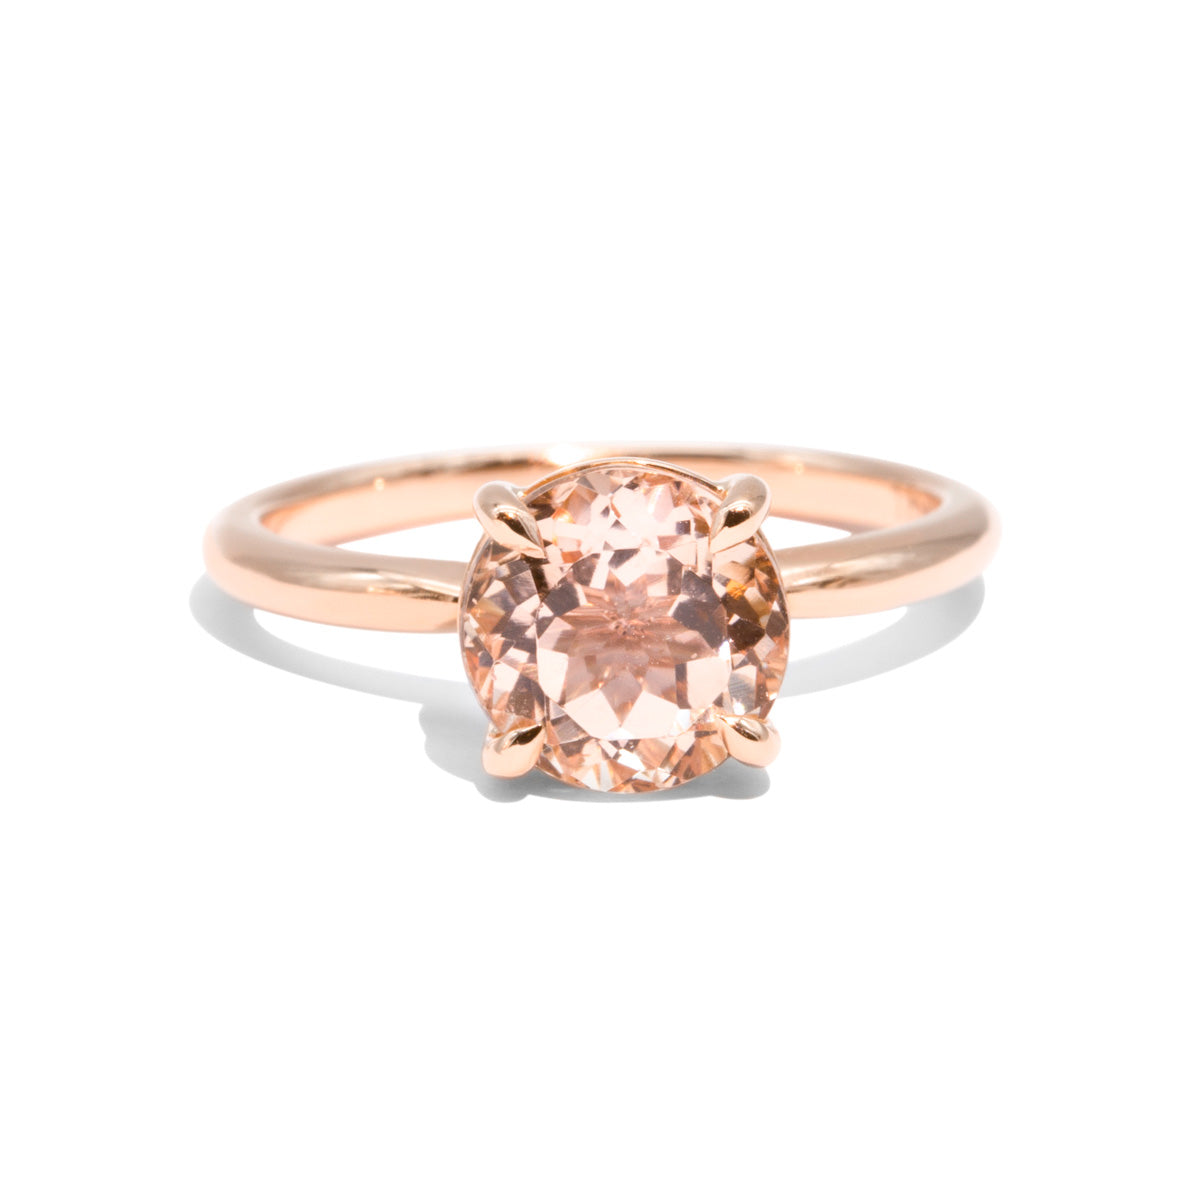 The Chloe Morganite Ring